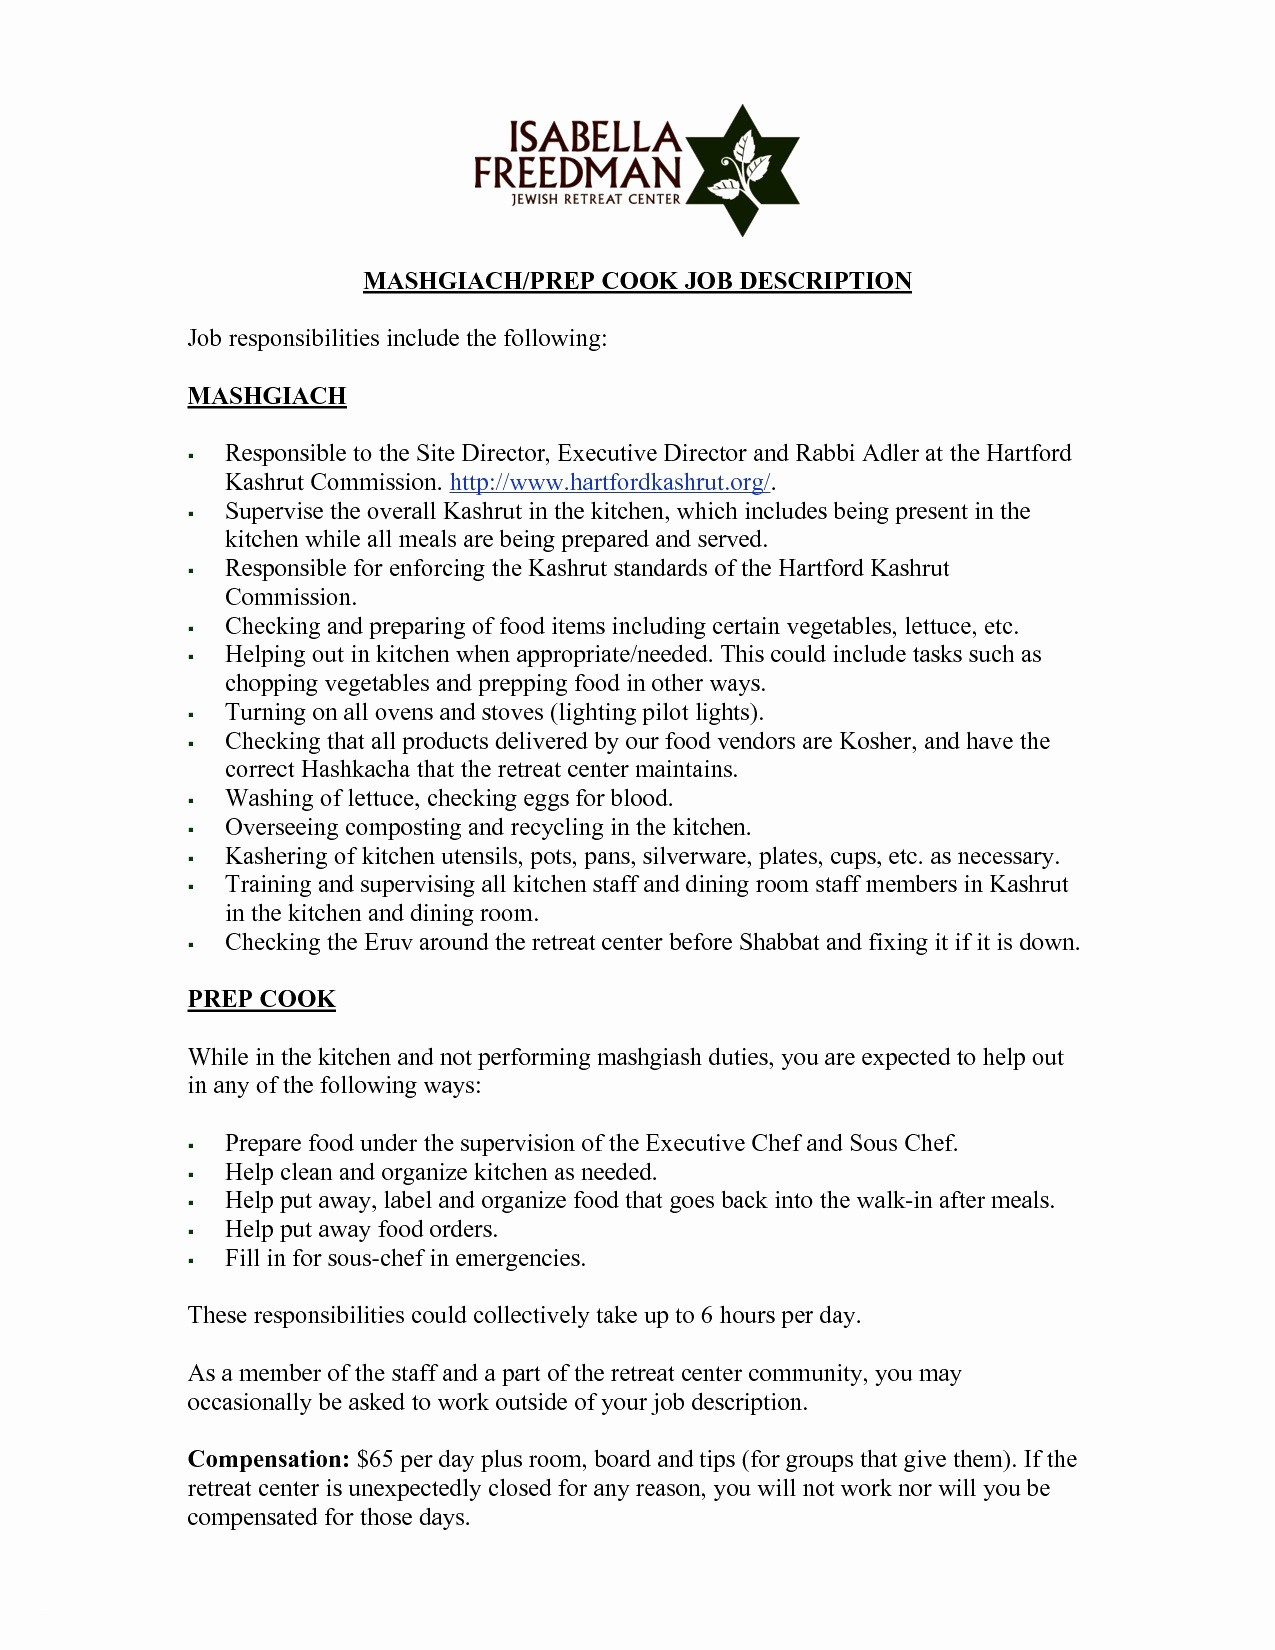 Cover Letter Template 2018 - Cover Letter Job Sample Fresh Resume Doc Template Luxury Resume and